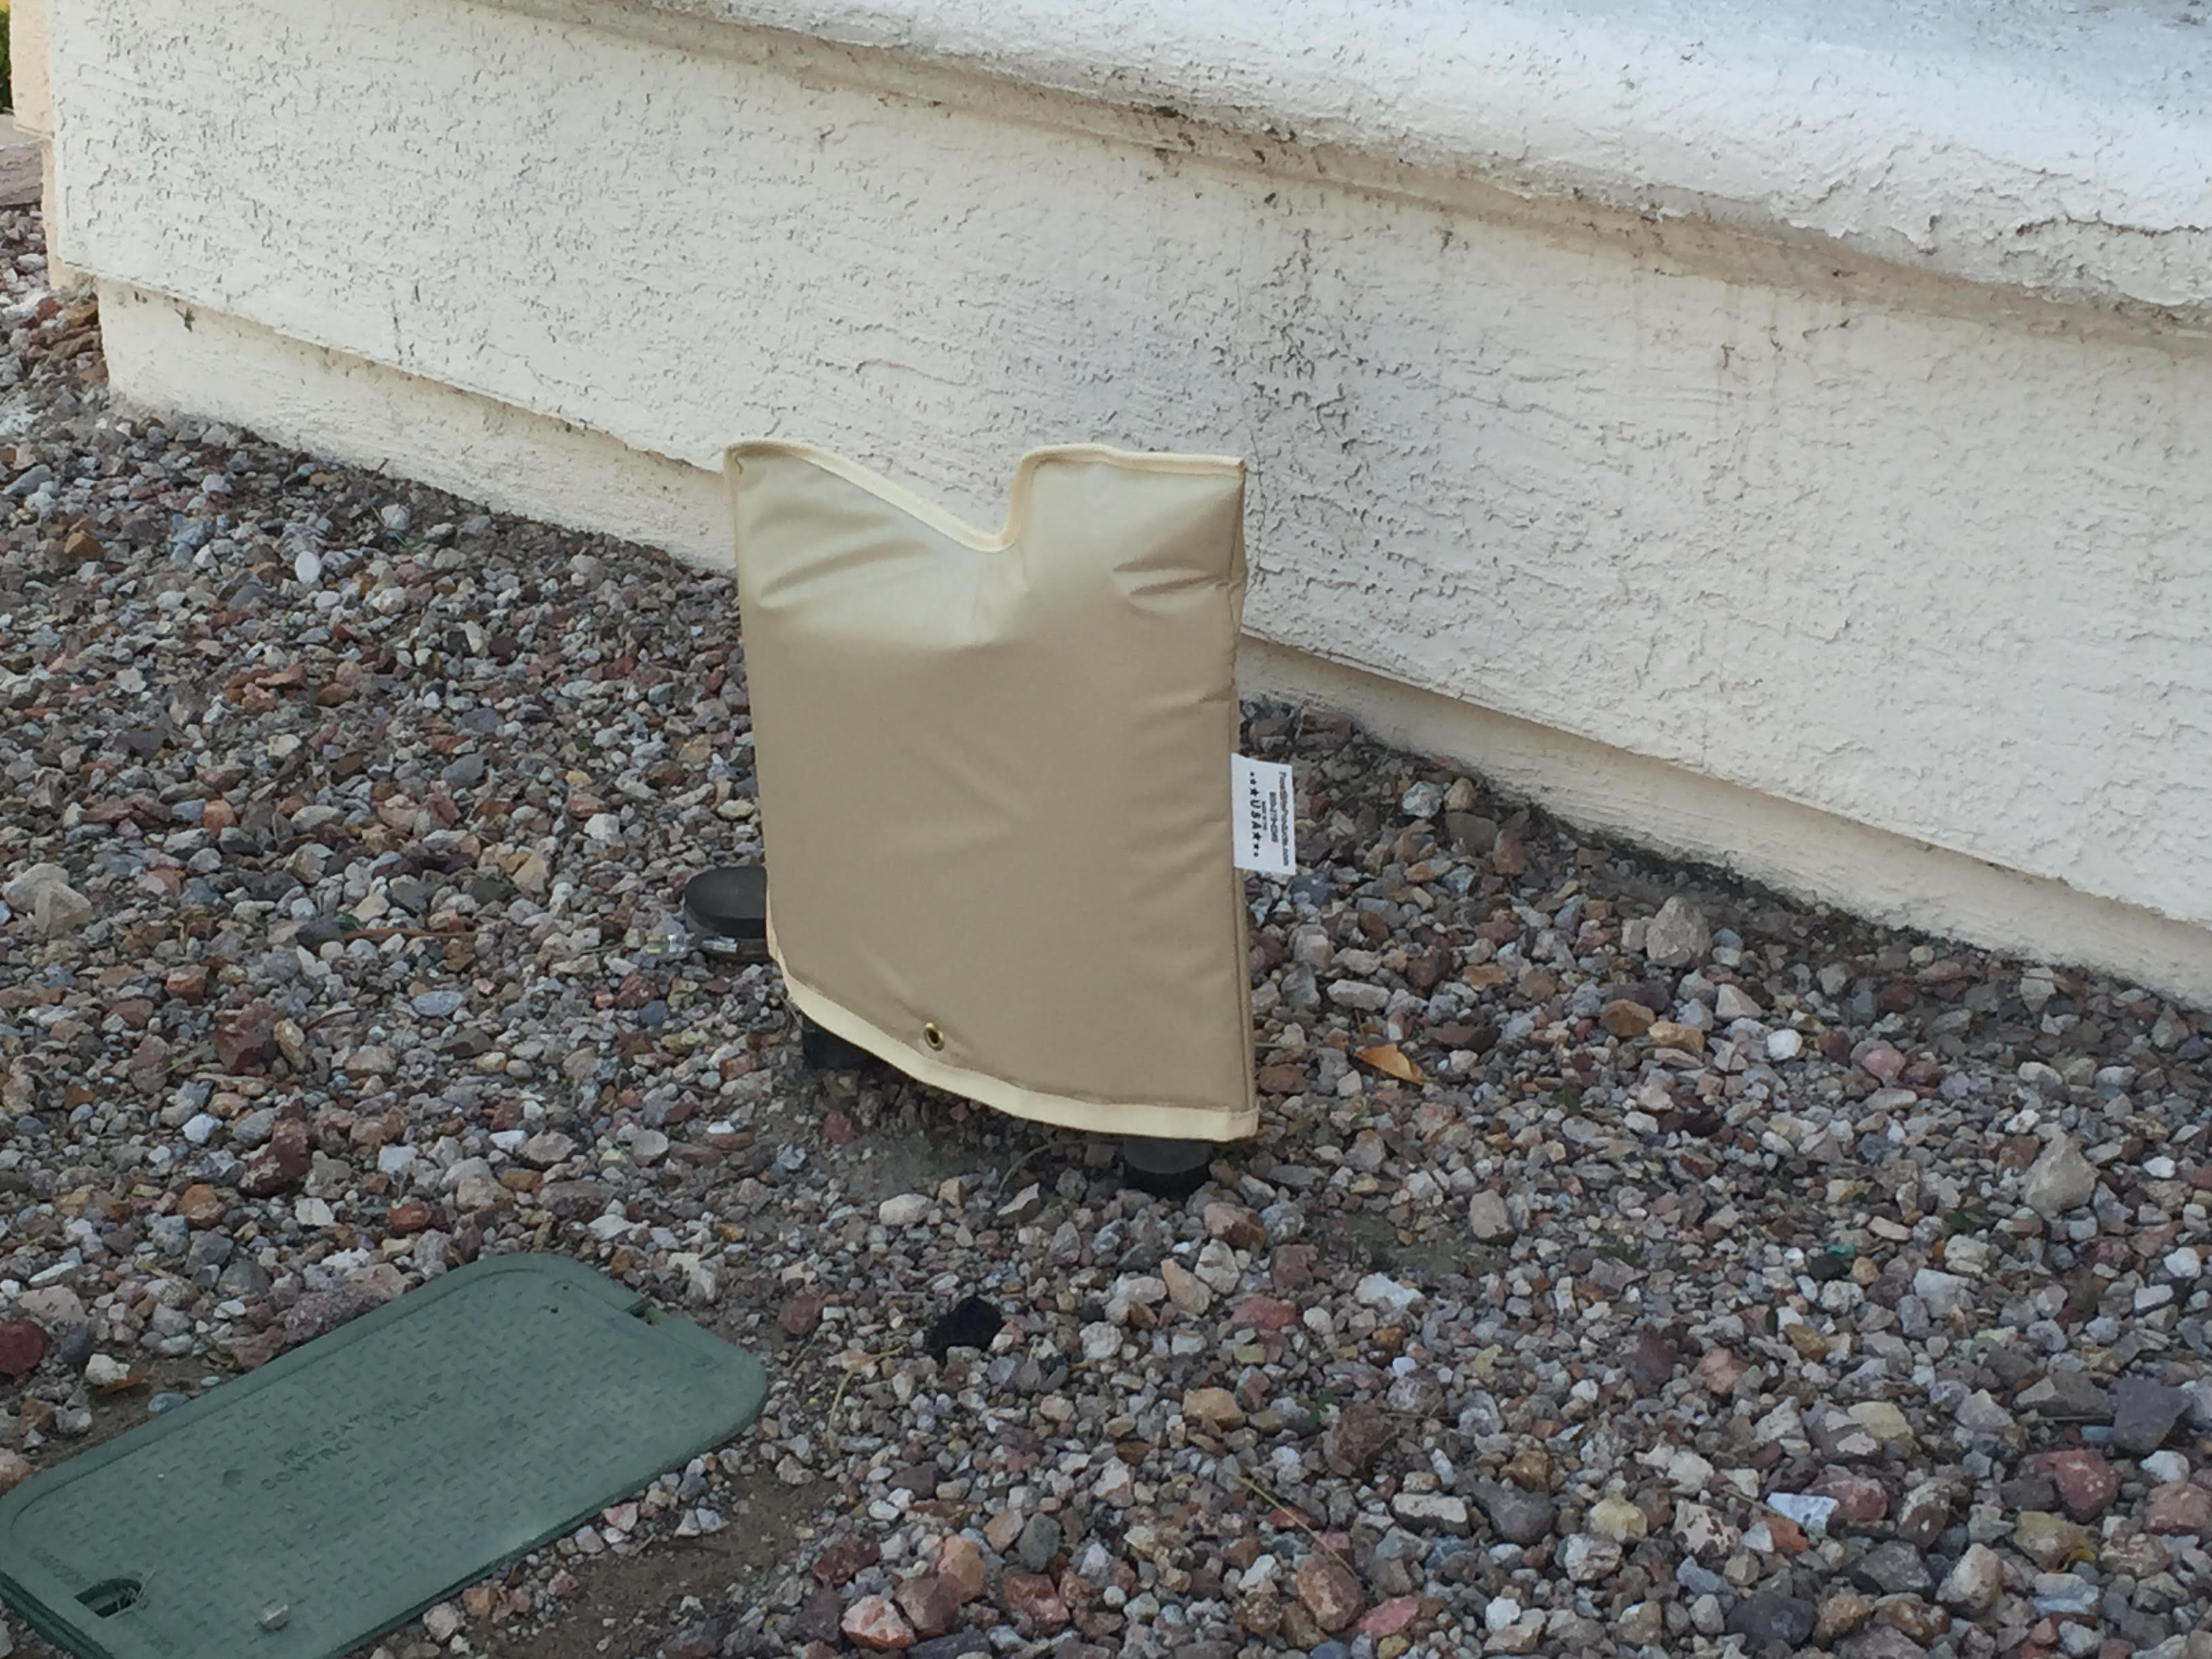 Outdoor Plumbing and Faucet Covers